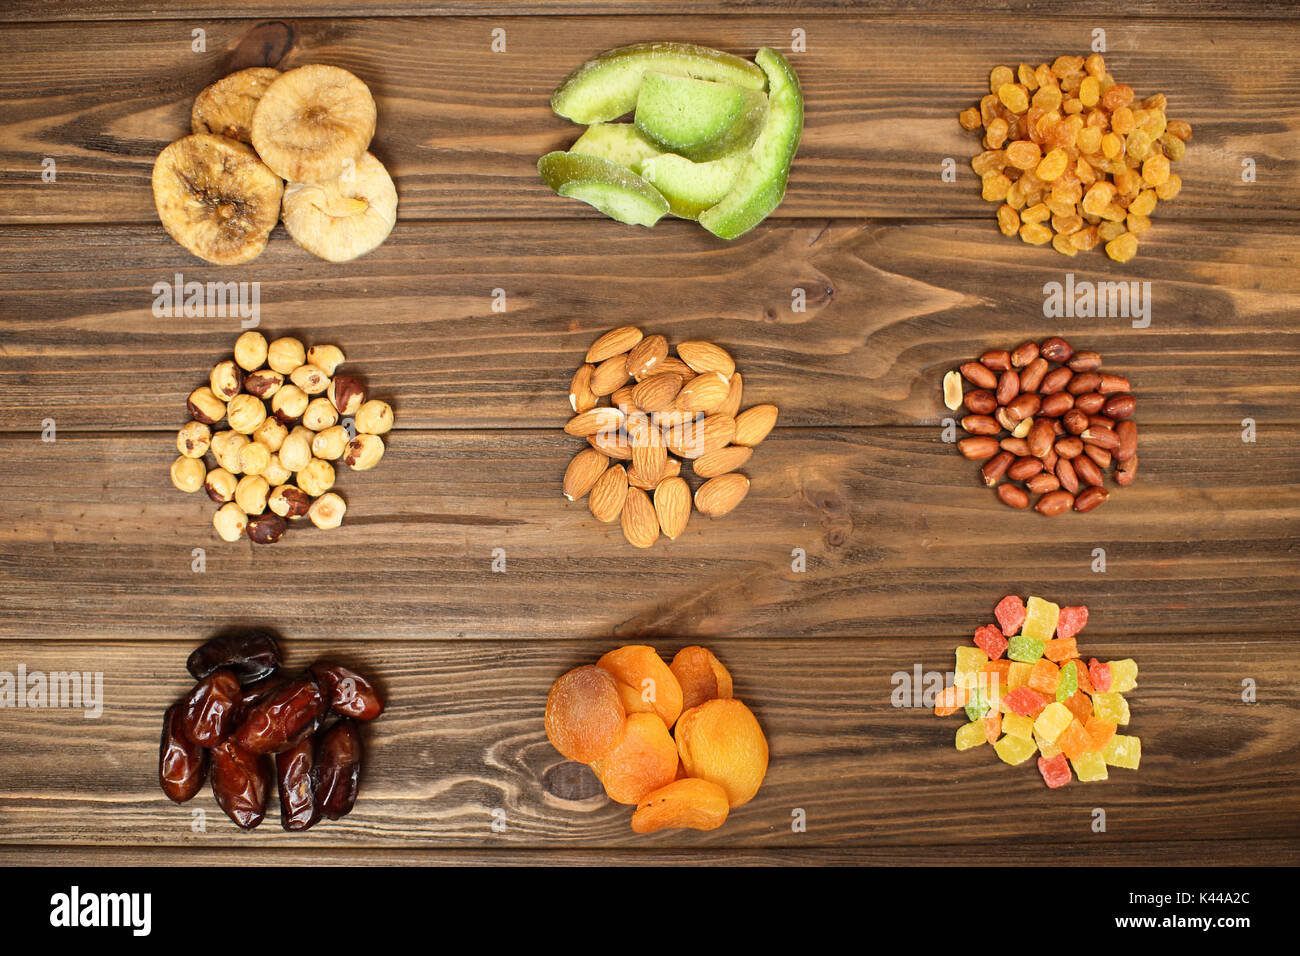 Nuts and dried fruits on wooden background . - Stock Image